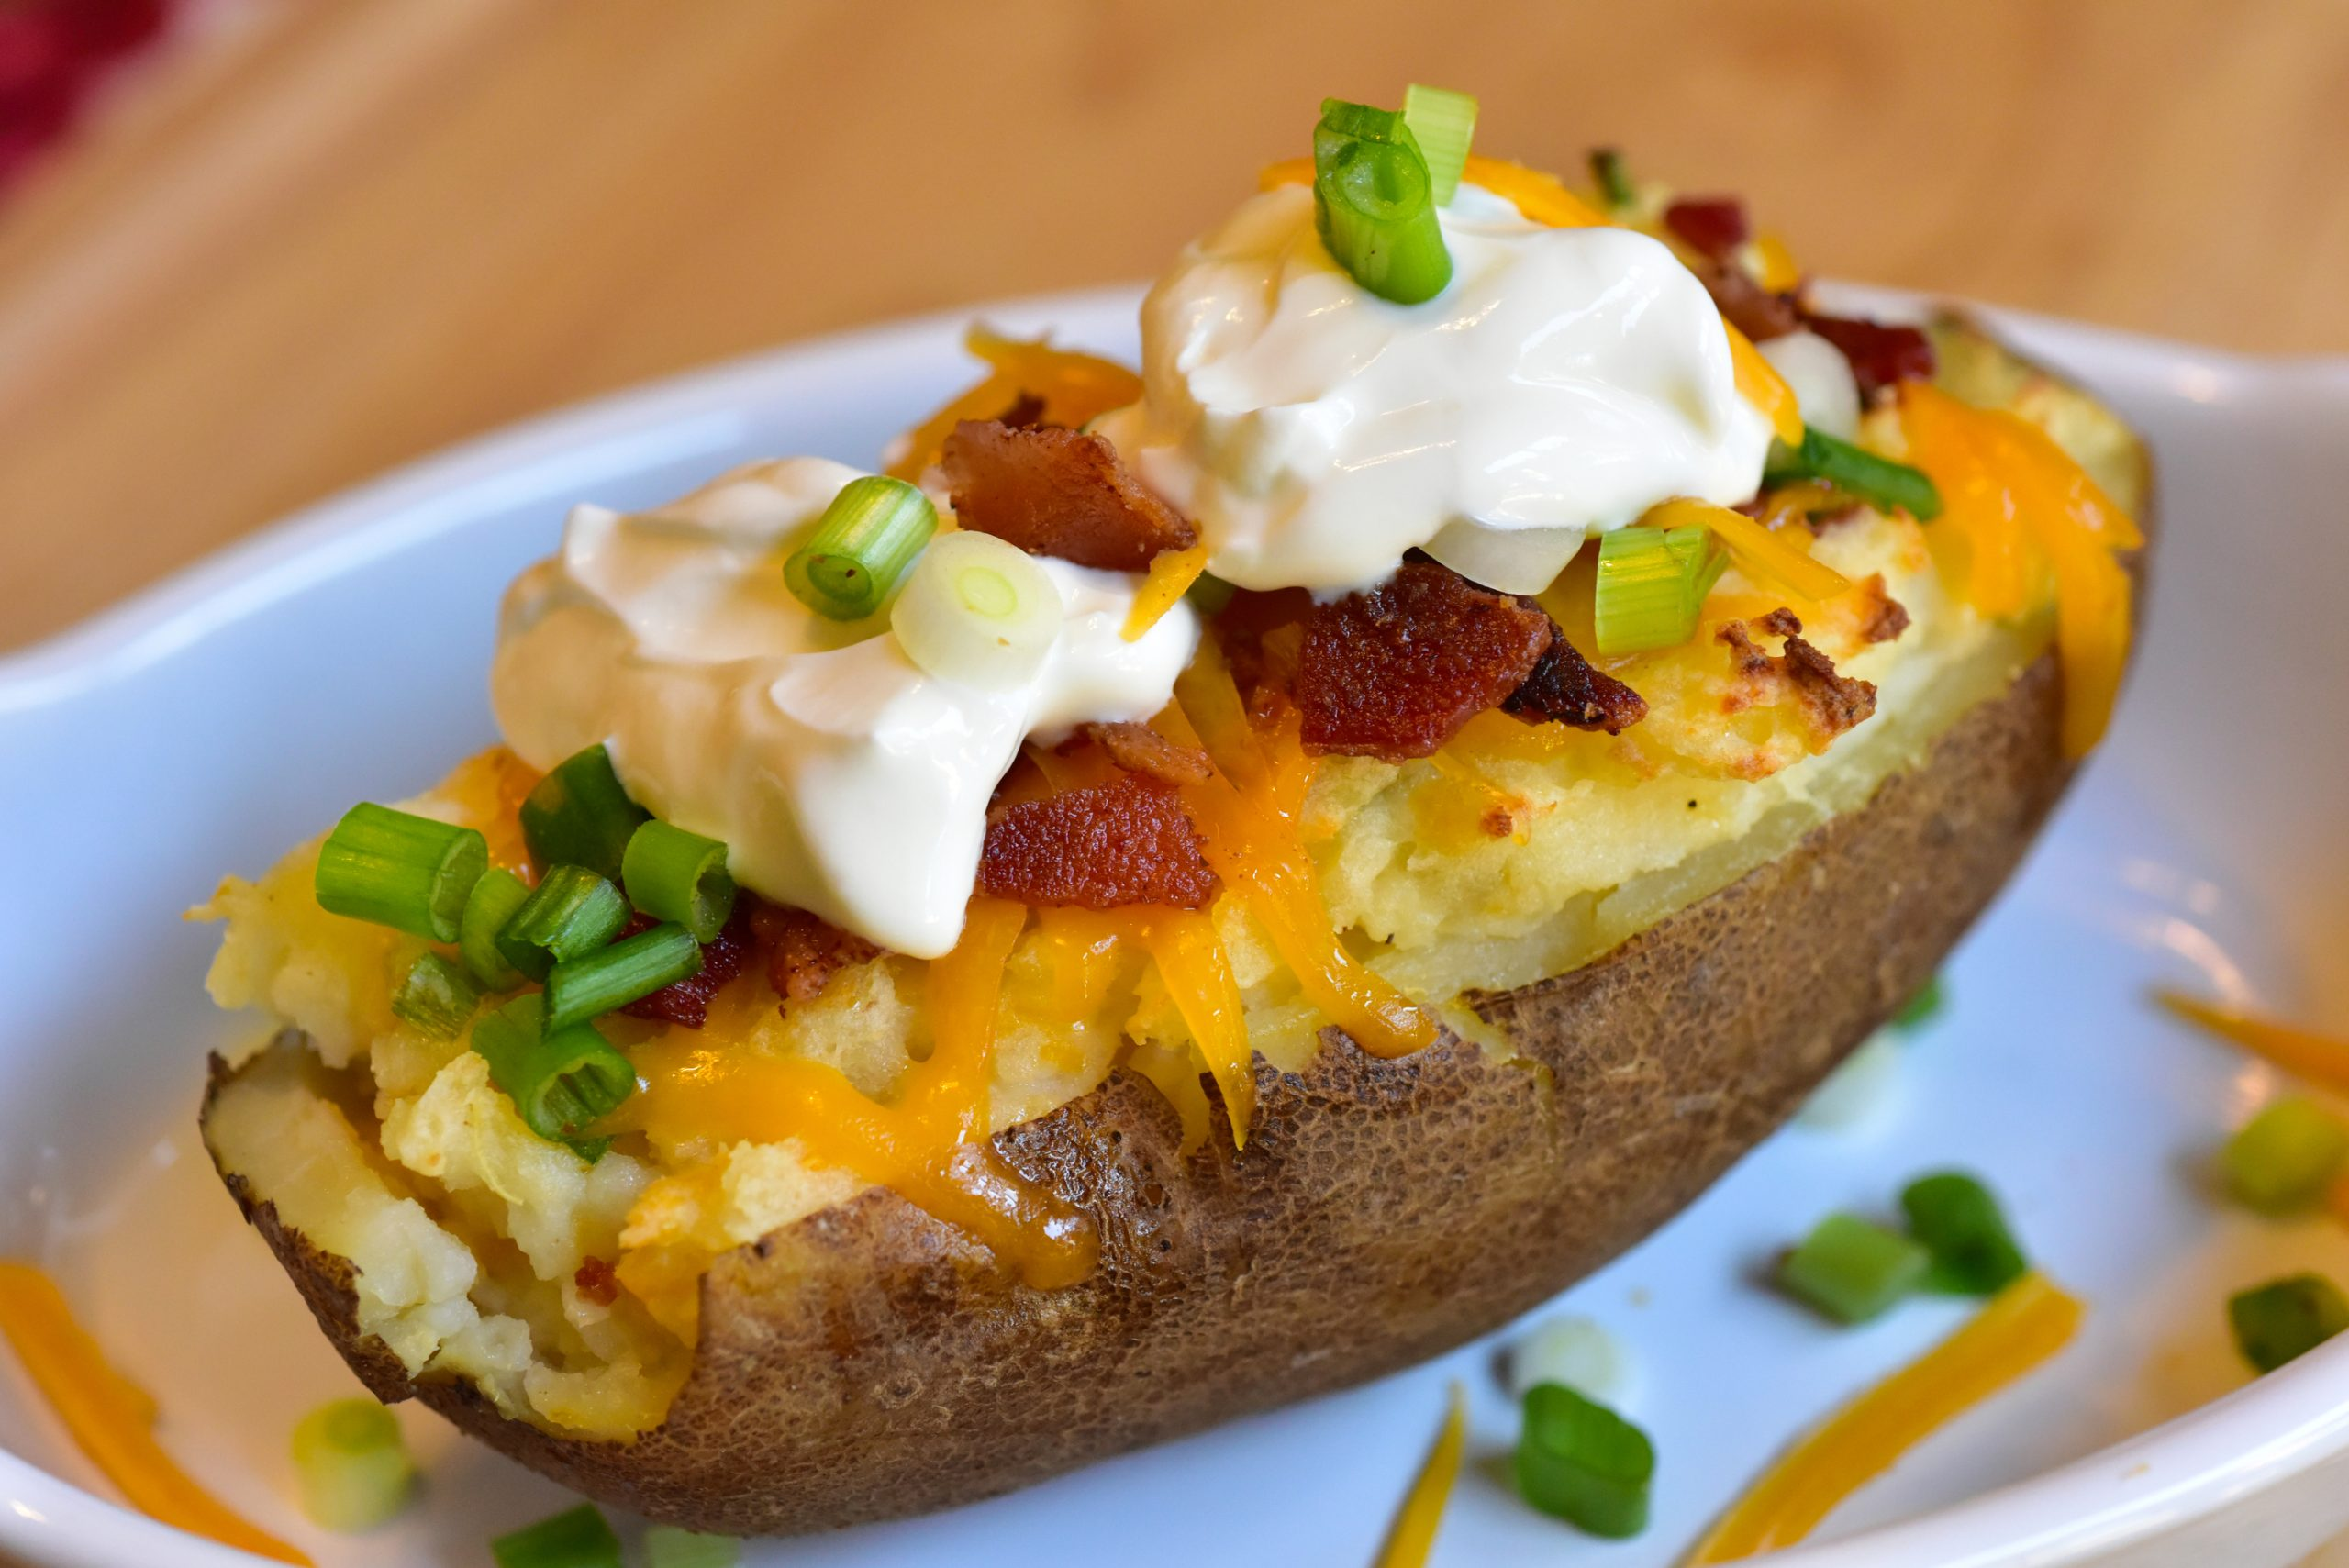 Twice baked potatoes fresh delicious with bacon and green onion | ID 93502988 © Swan555 | Dreamstime.com